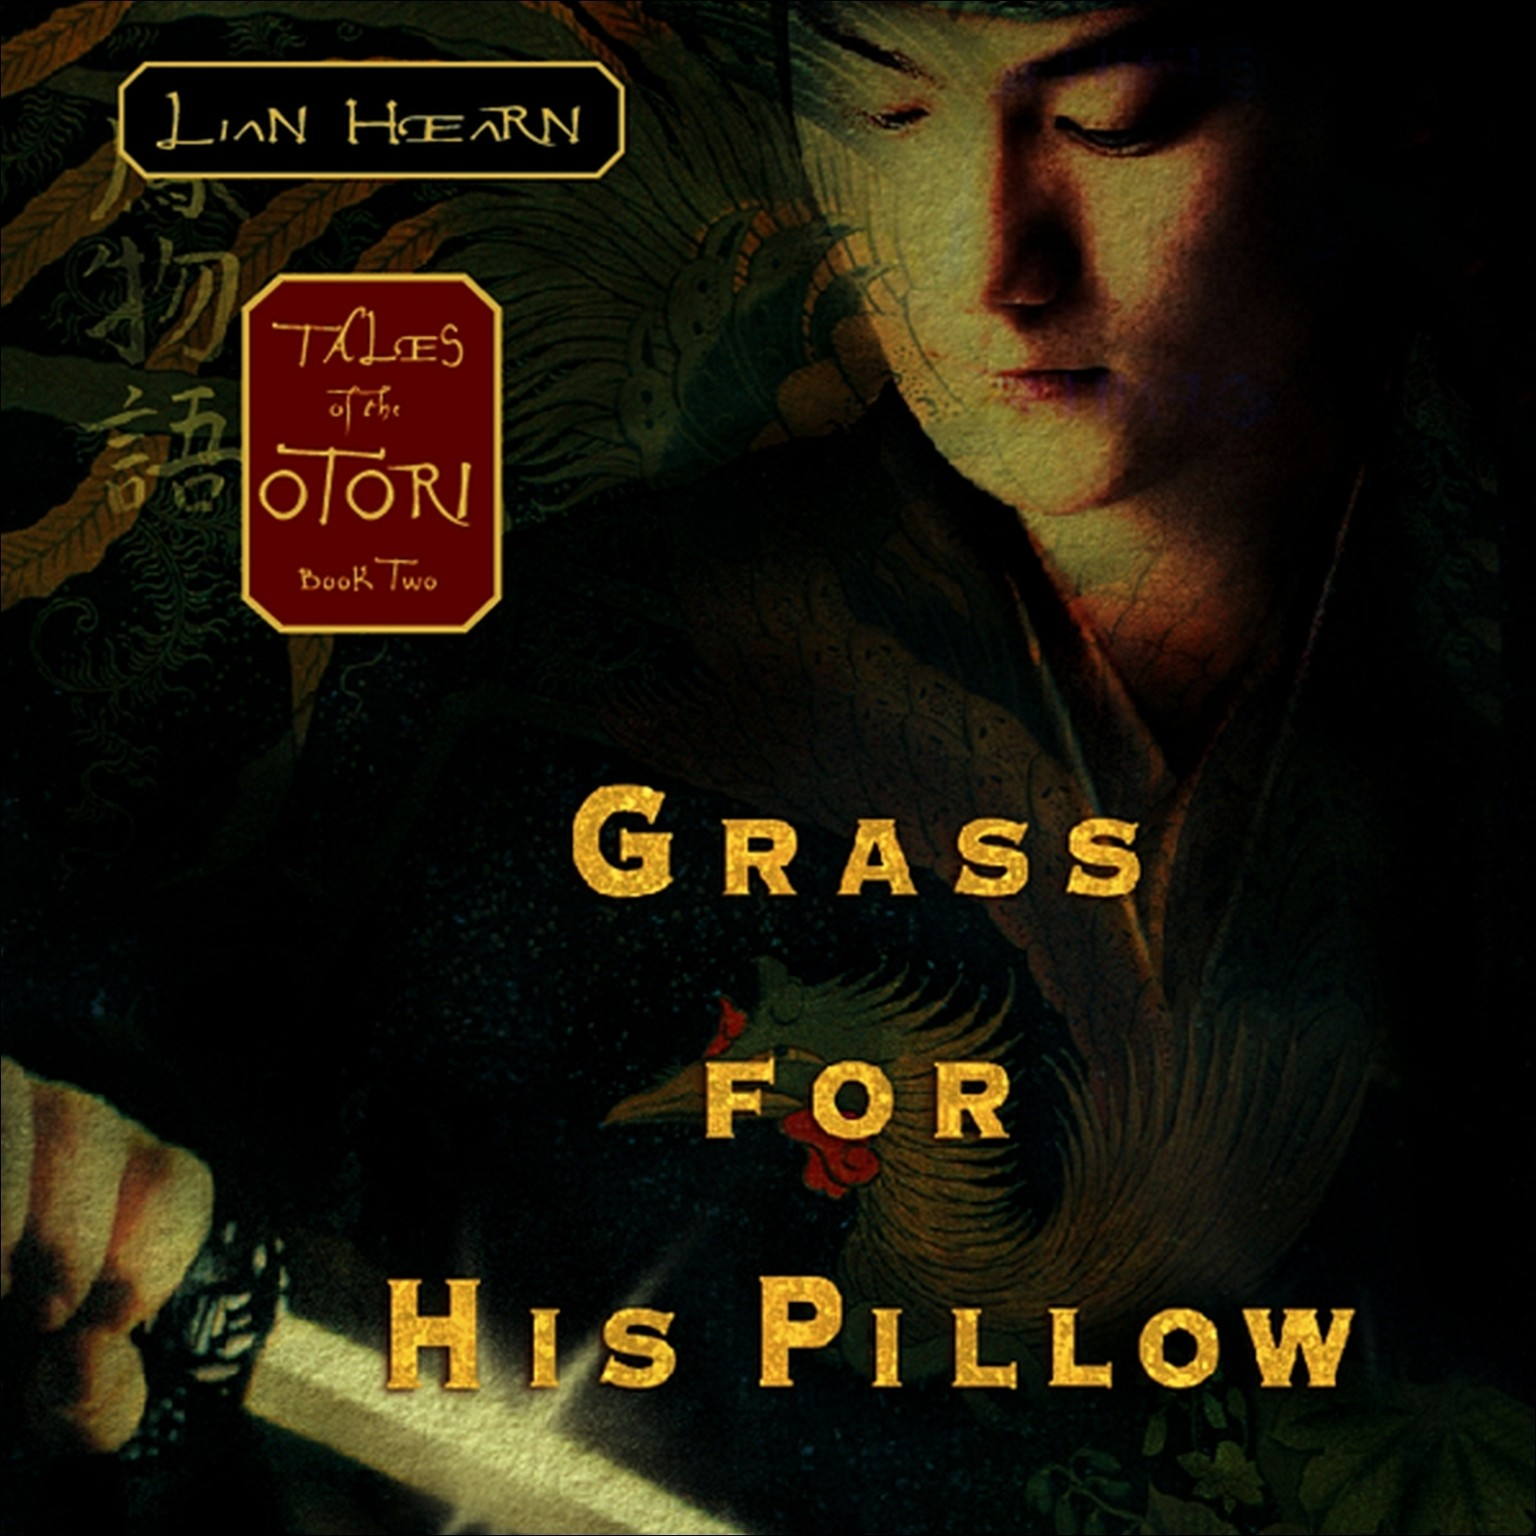 Grass for His Pillow (Tales of the Otori, Book 2) by Lian Hearn